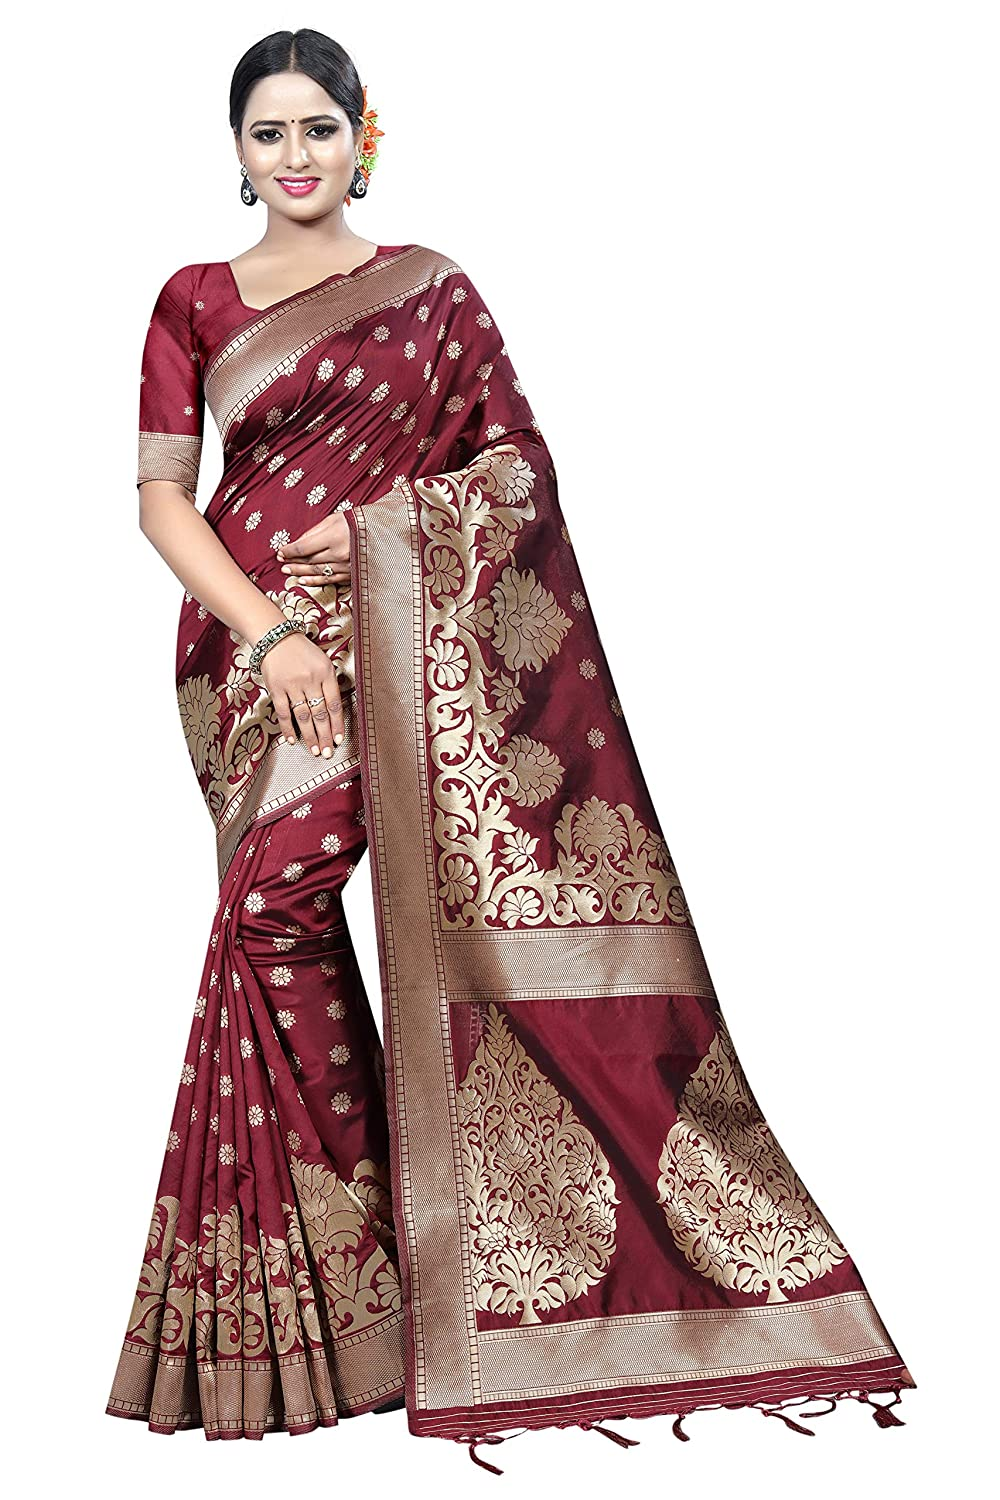 Vaividhyam Sarees Women's Cotton Silk Saree With Blouse Piece